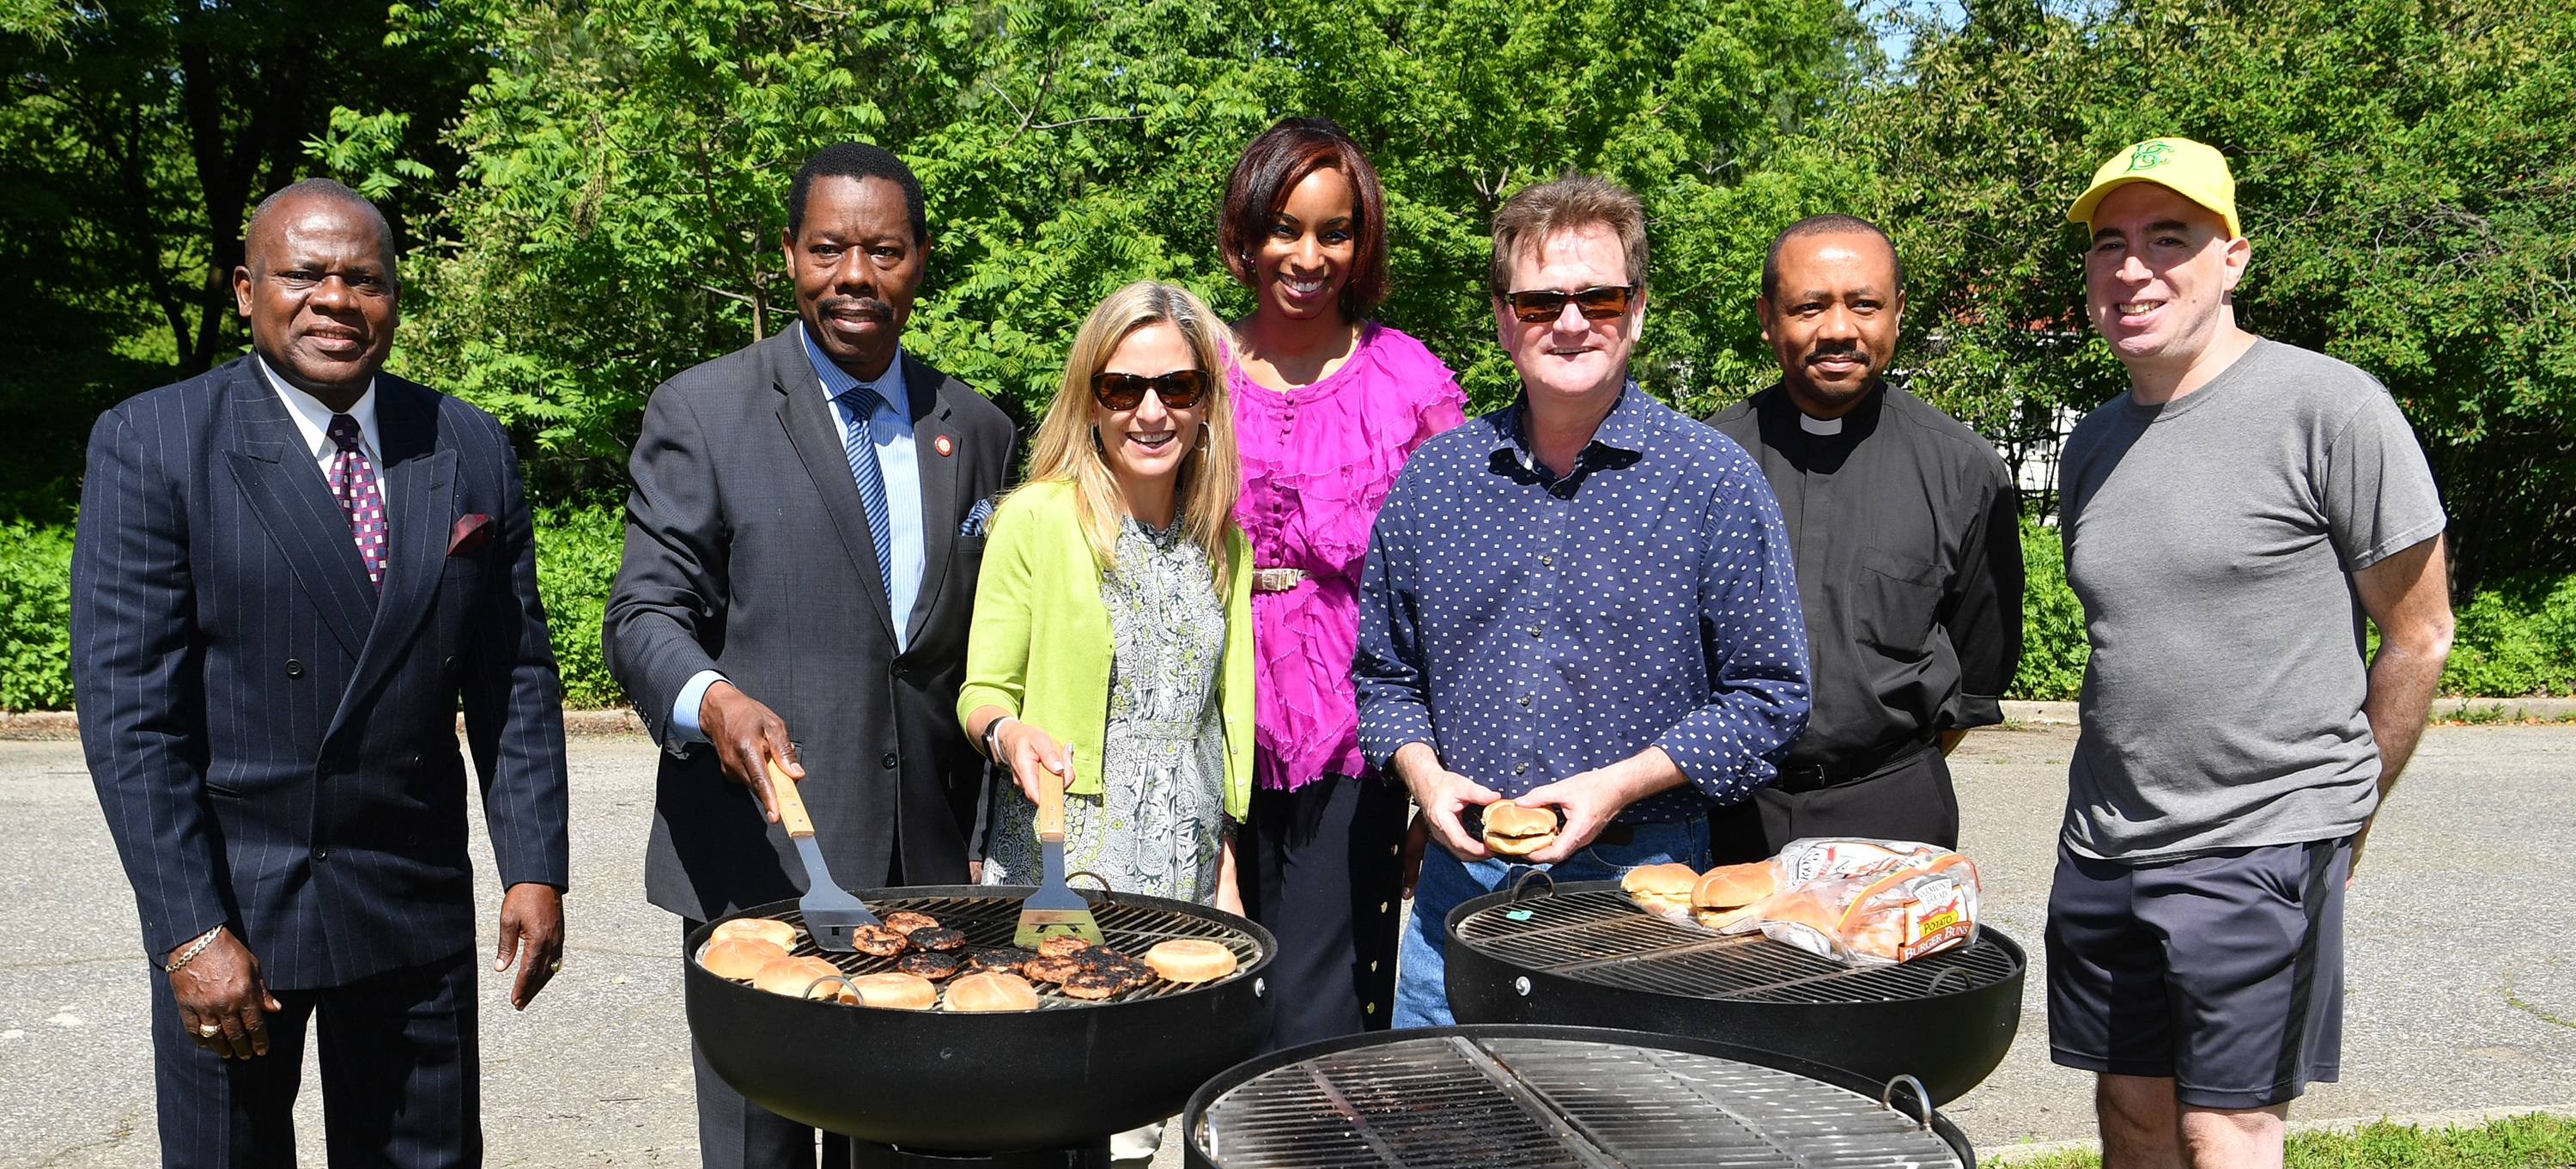 Two triple grill stations are now ready for barbecue action in the south eastern section of Prospect Park